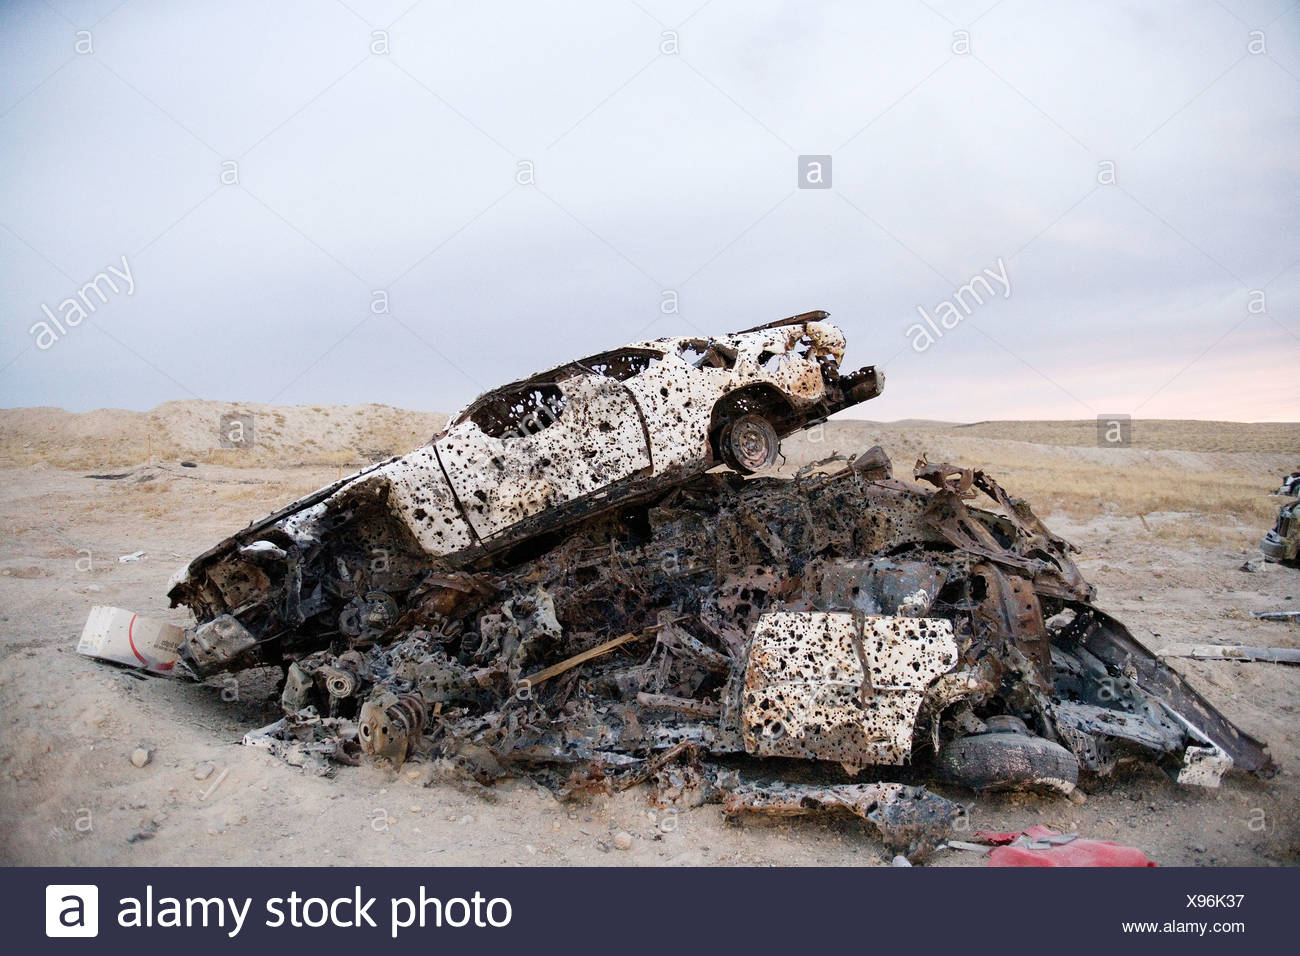 Car with bullet holes used for target practice - Stock Image